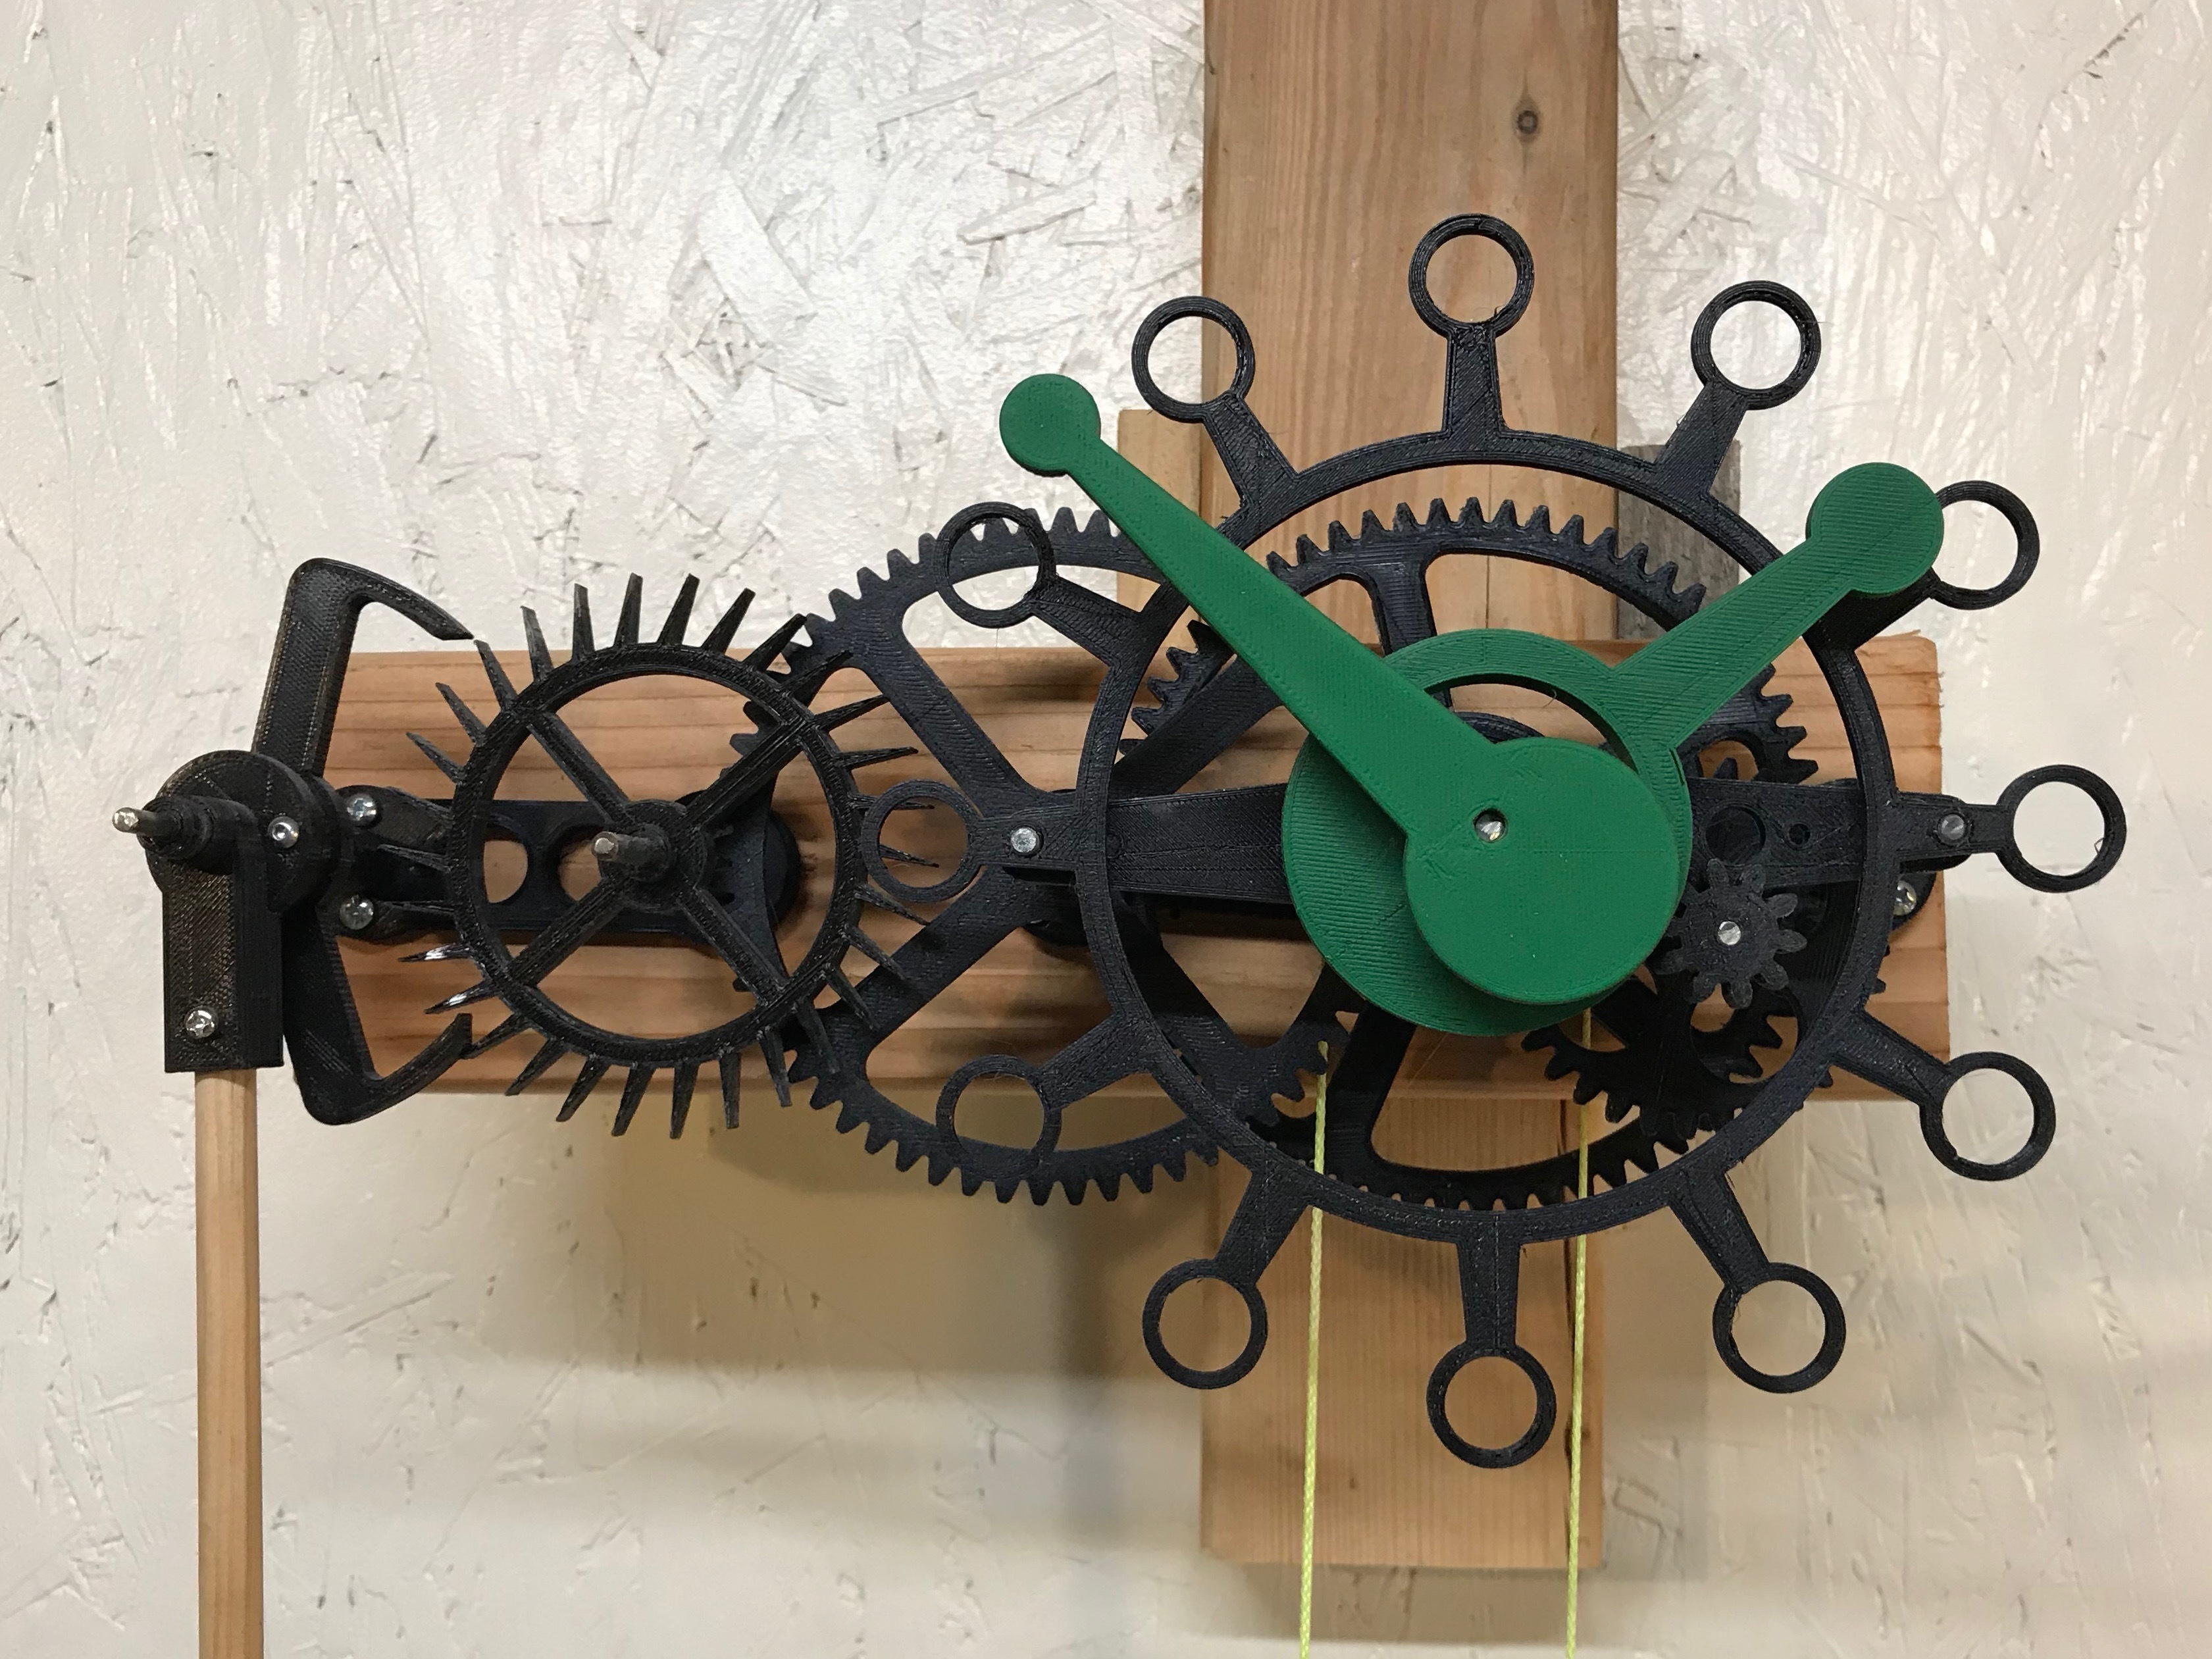 firstTry.jpg Download free STL file The First Clock • 3D print design, JacquesFavre